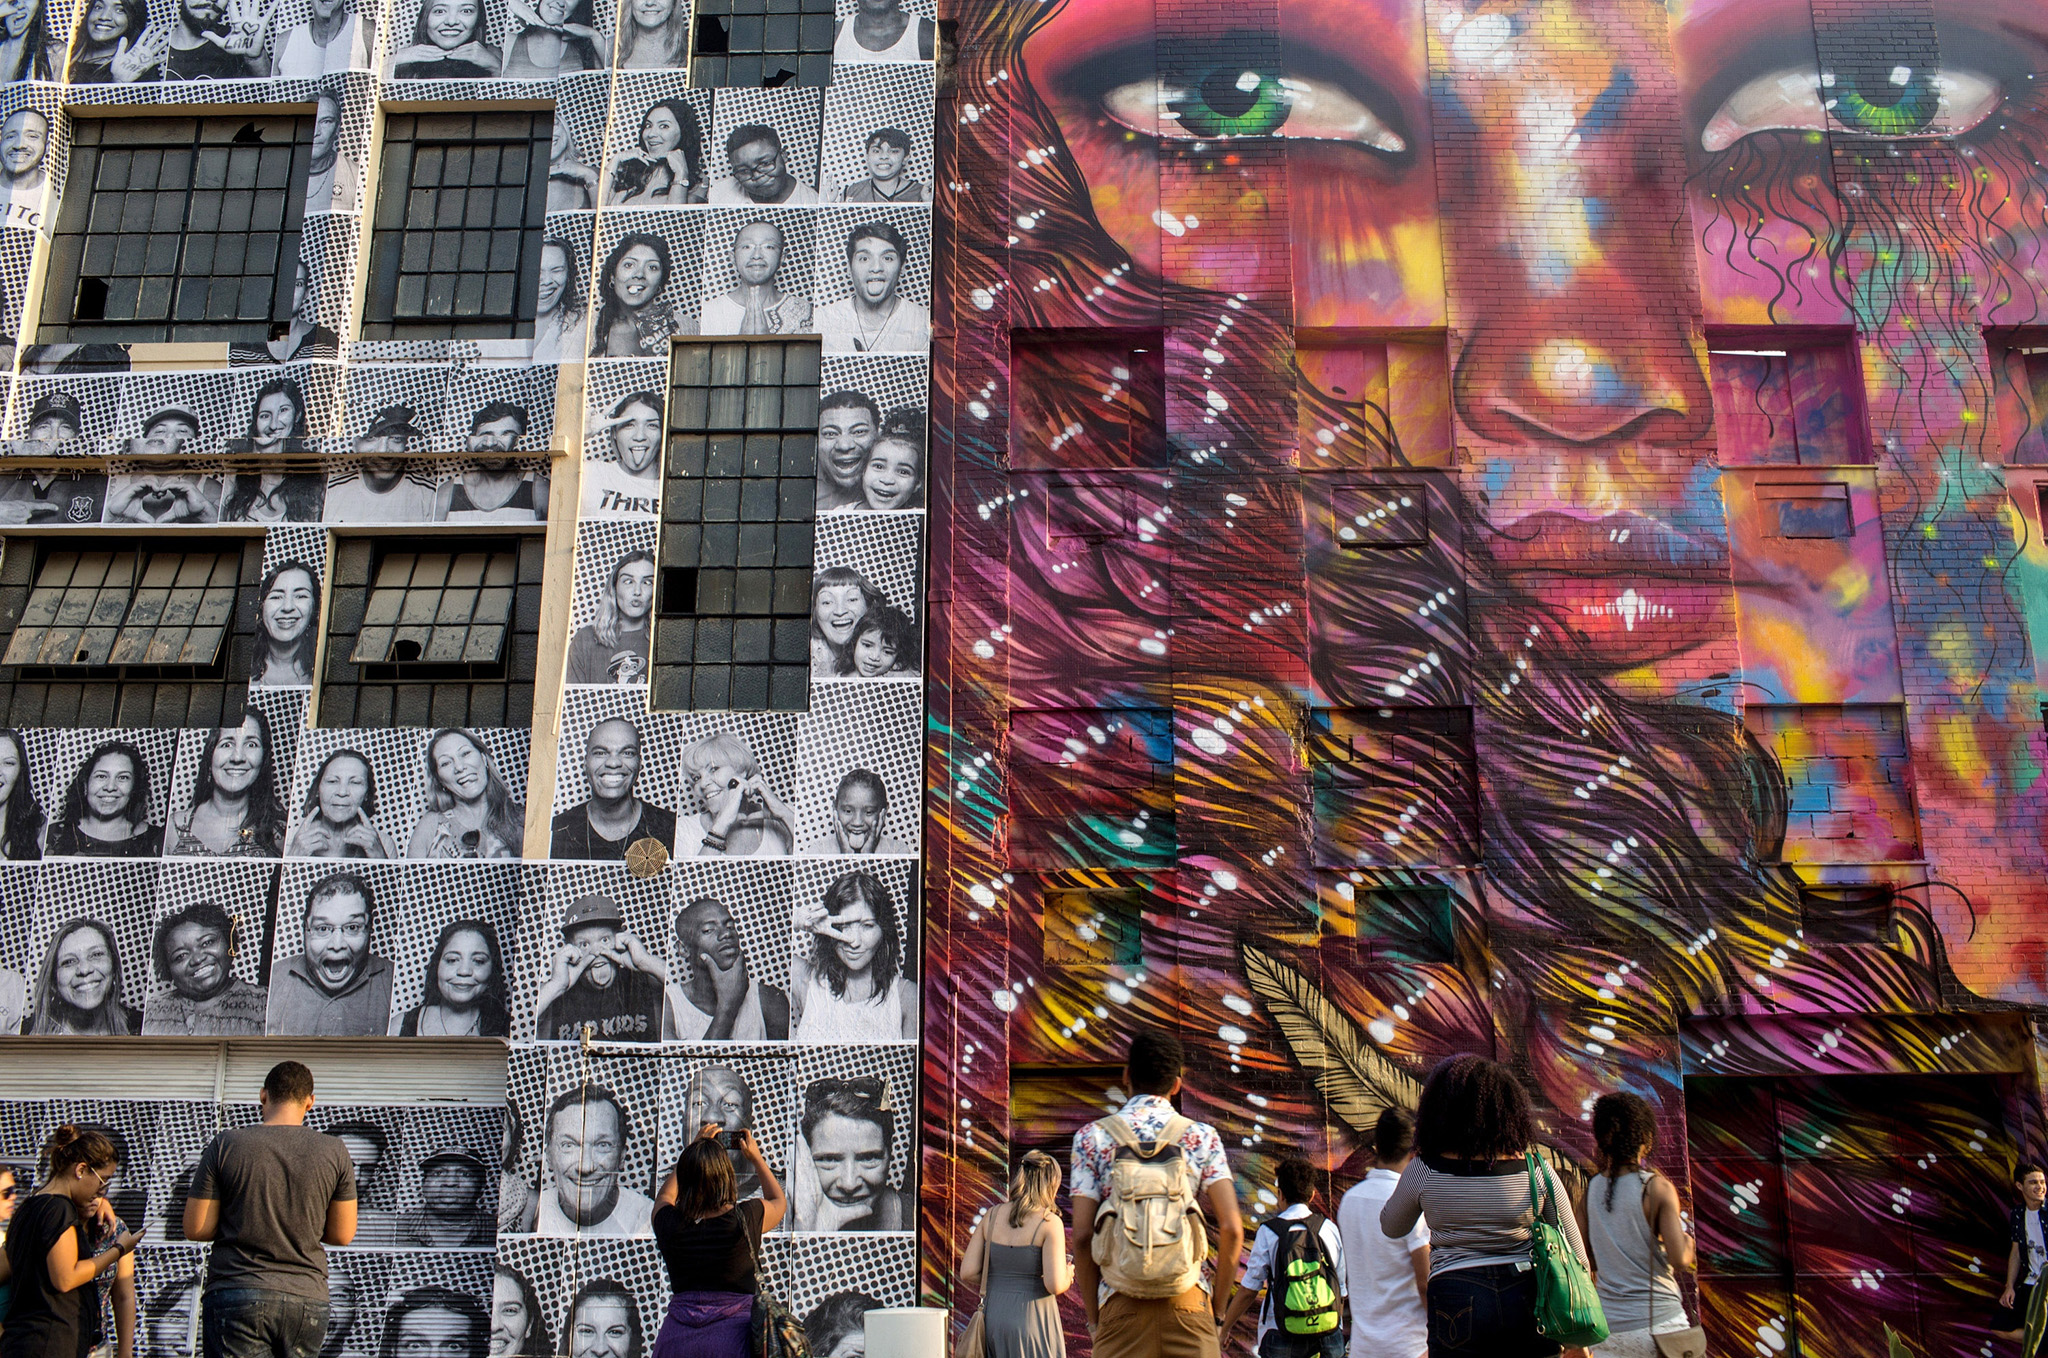 RIO DE JANEIRO, BRAZIL - AUGUST 09:  People walk in front of portraits produced by artist JR for his inside out project (L) on August 9, 2016 in Rio de Janeiro, Brazil. The artist JR has unveiled numerous art installations across Rio de Janiero celebrateing olympic athletes.  (Photo by Chris McGrath/Getty Images)